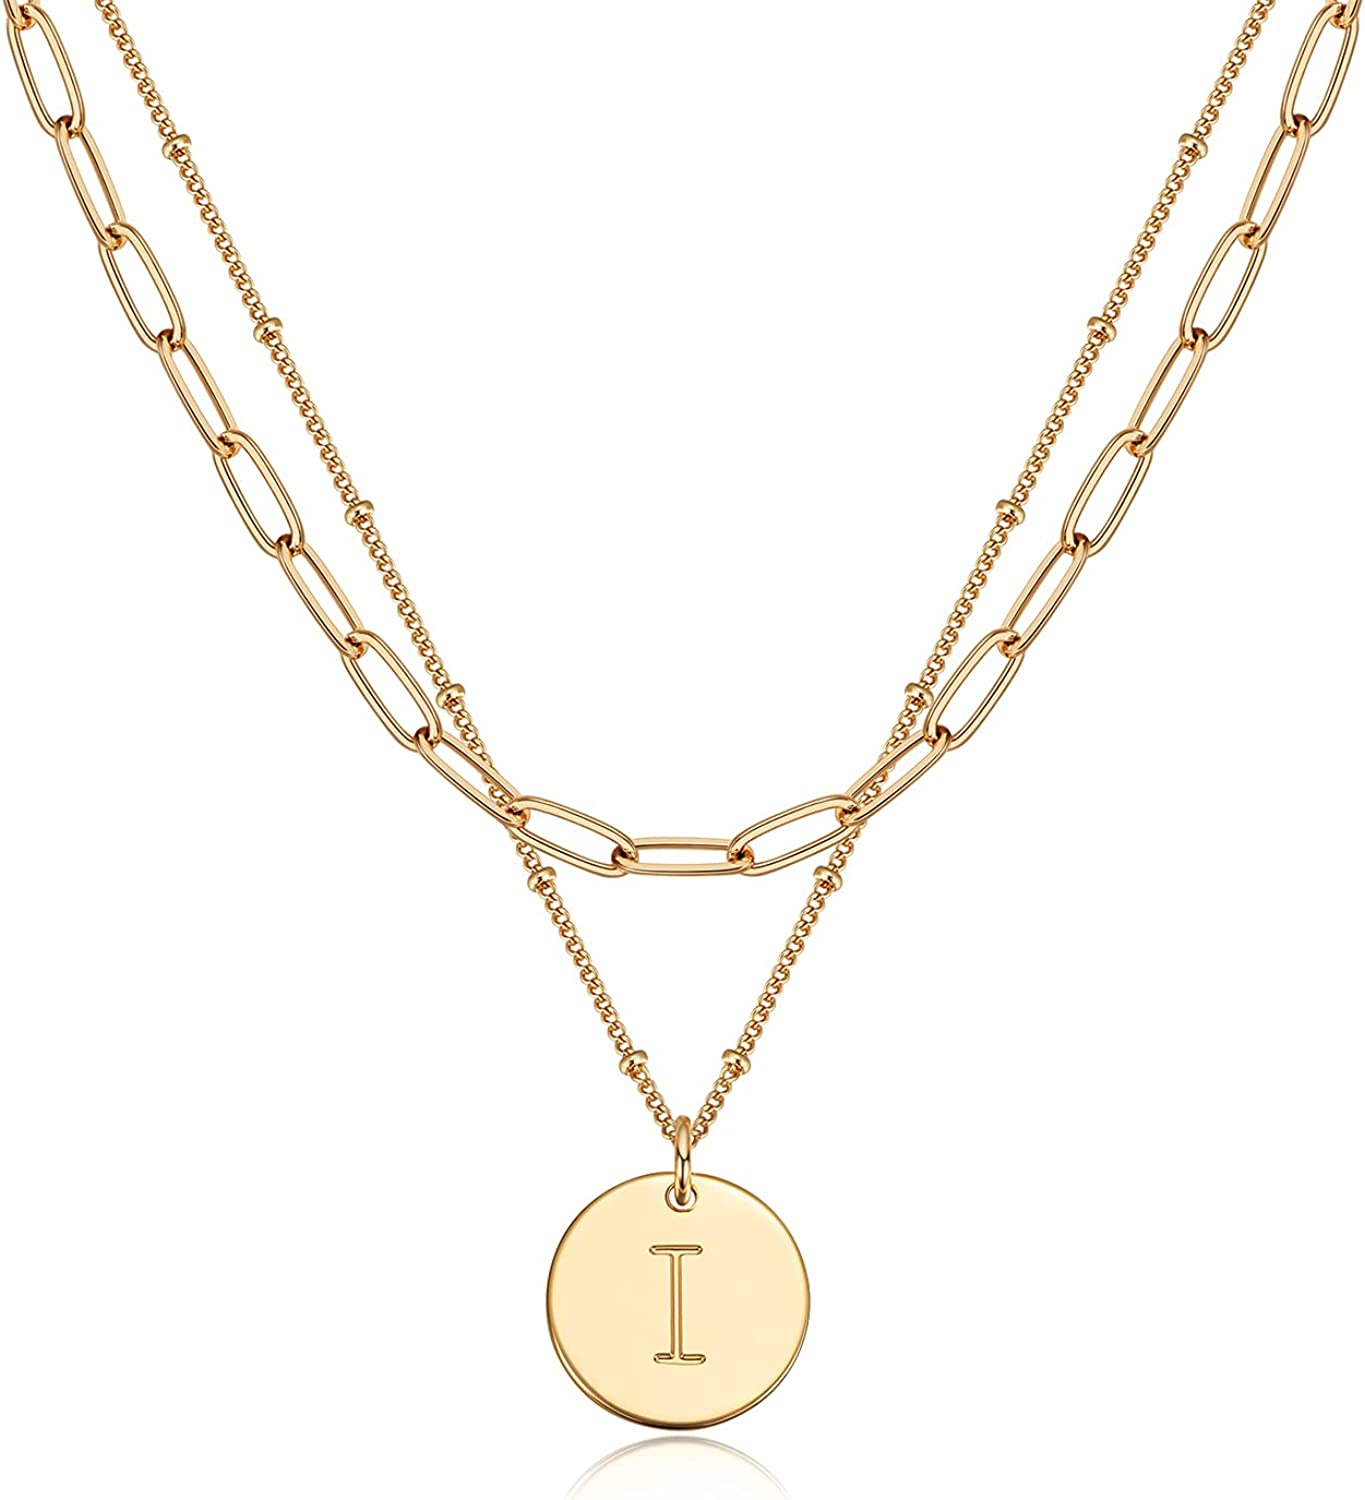 Valloey Rover Gold Layered Disc Necklace 14K Gold Plated Dainty Initial Coin Pendant Necklace Personalized Side Engraved Letter Alphabet Charm Layering Necklace for Women